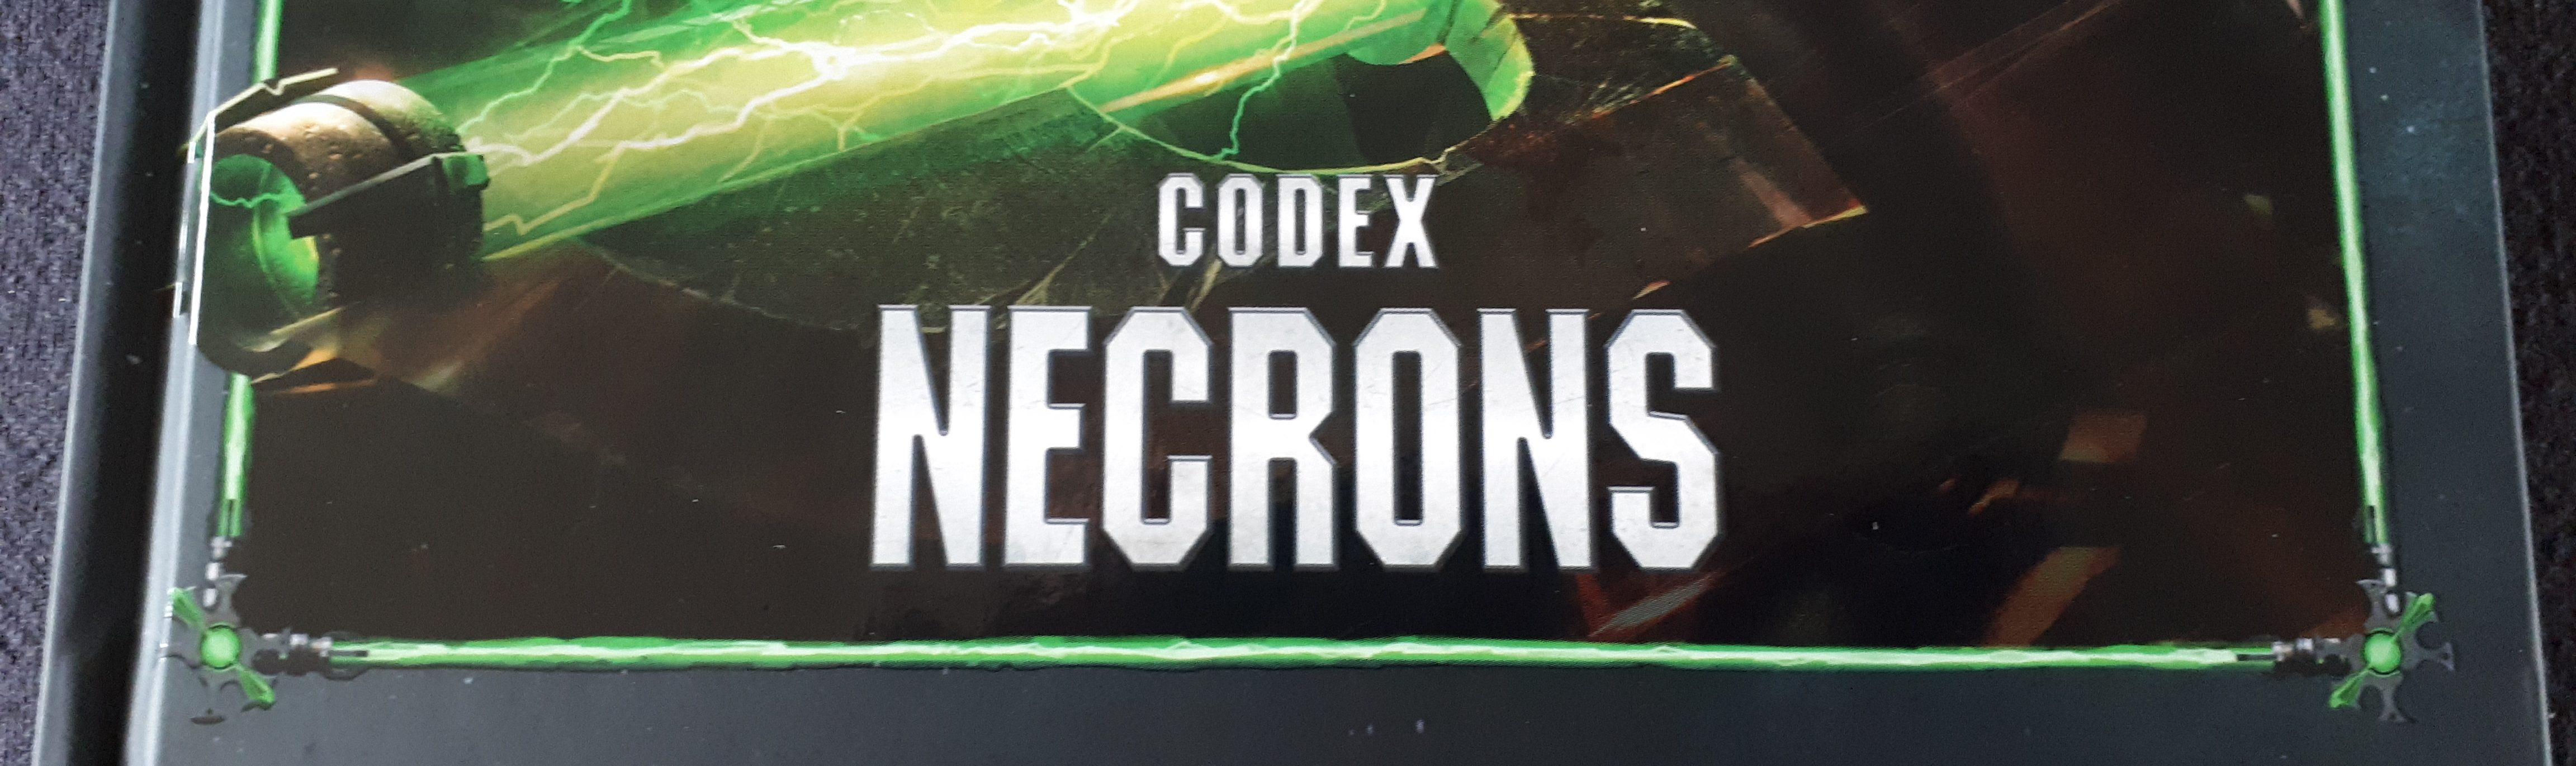 Warhammer 40K Codex: Necrons Review - The Slumbering Legions